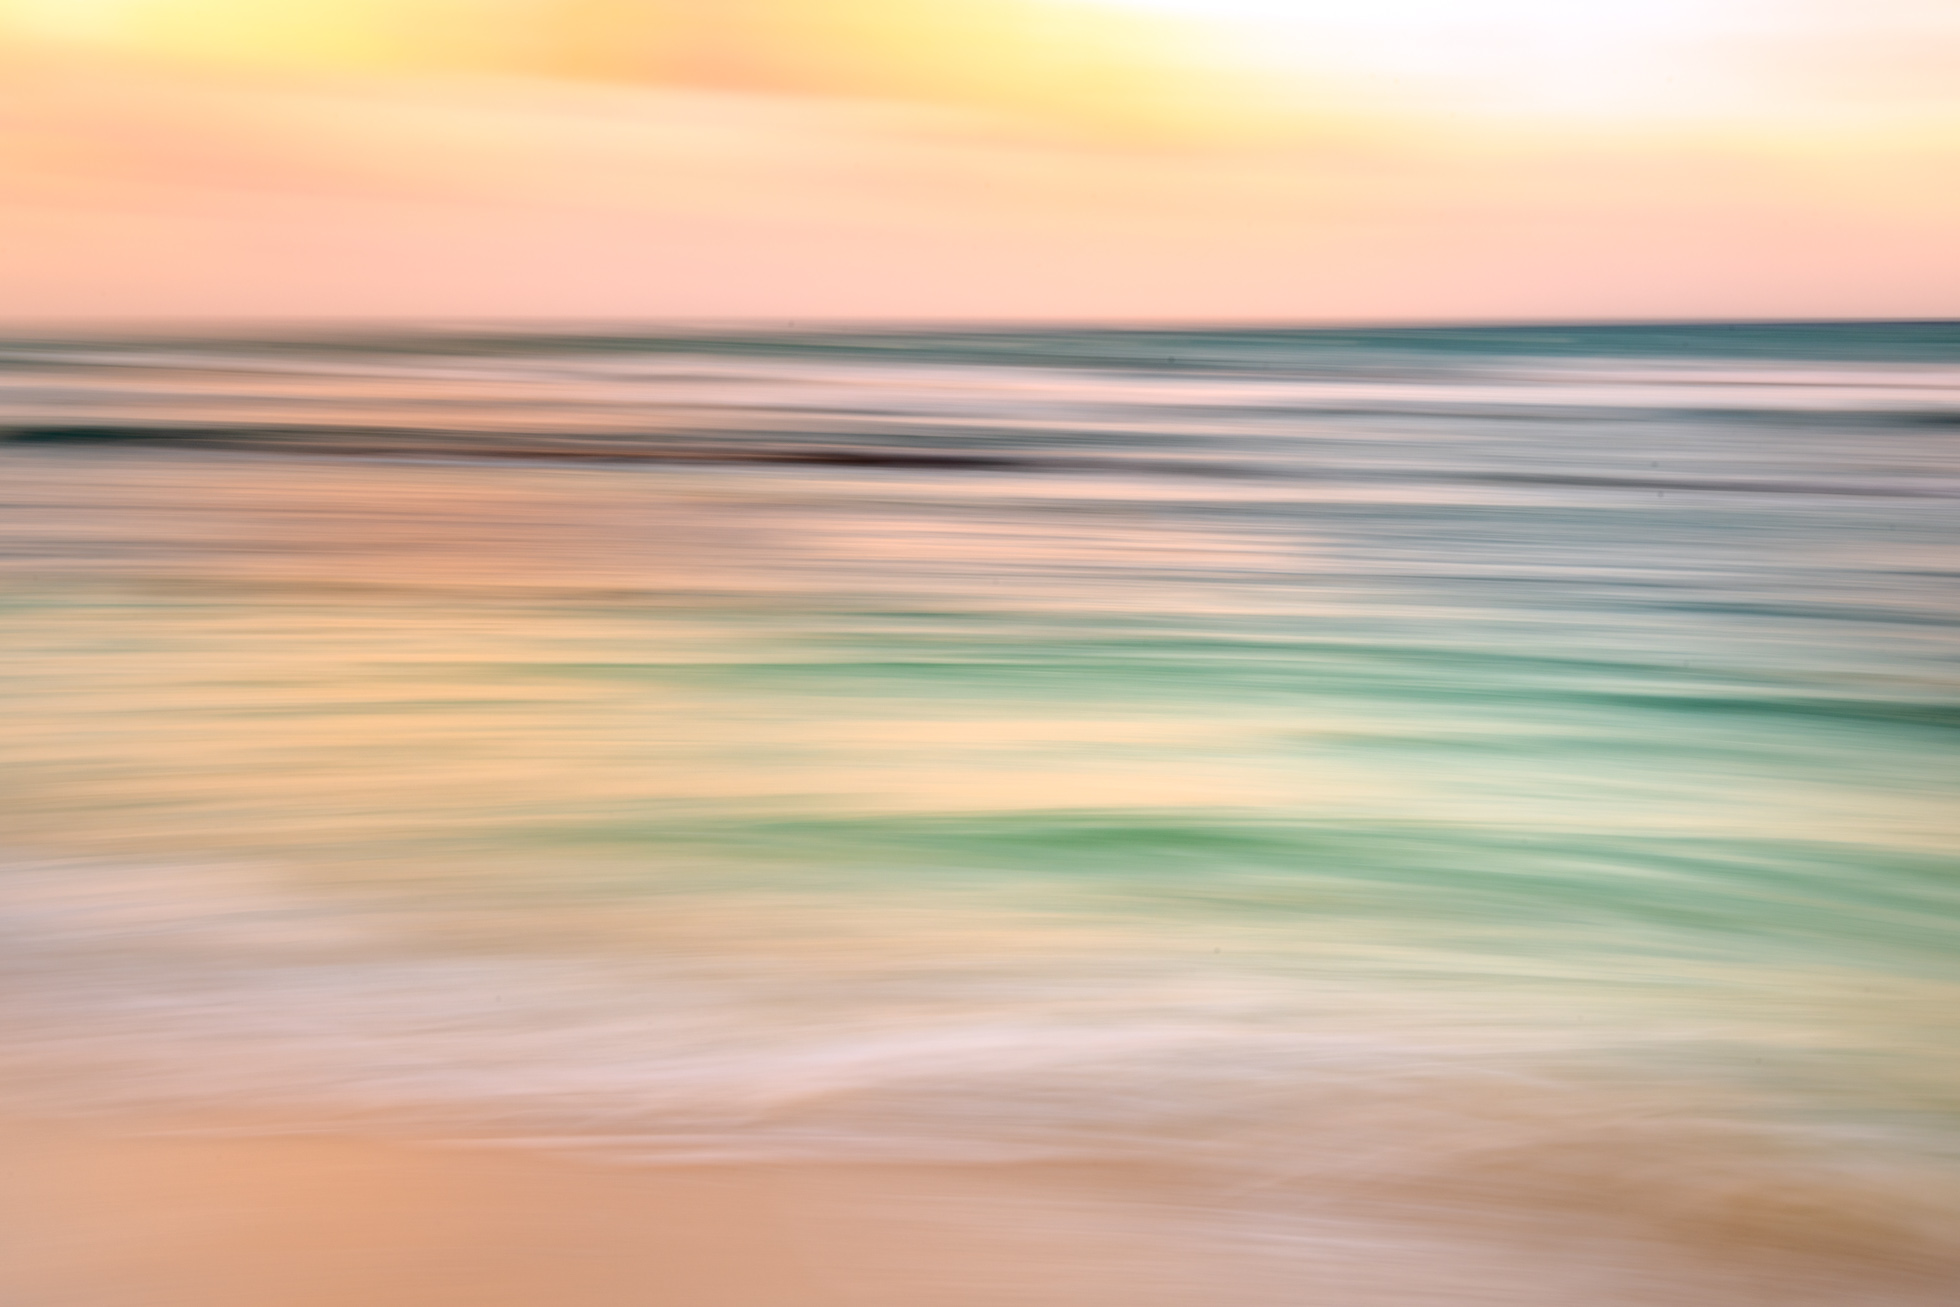 The colors of a sunset and gorgeous water in Mexico provided a great opportunity for this panning seascape.